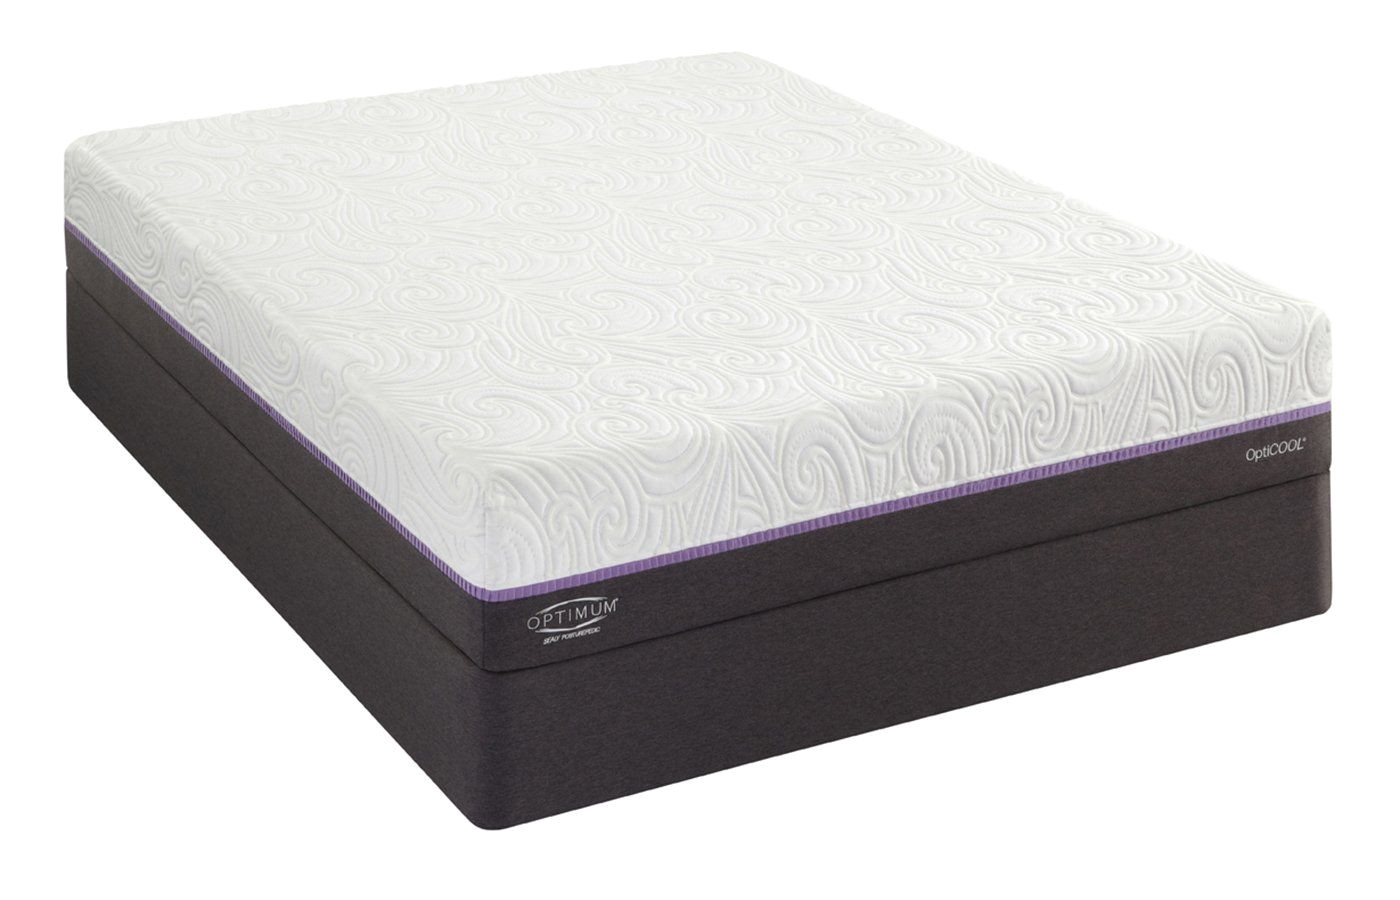 Sealy Posturepedic Backcare Elite Mattress Cushion Firm Vs Firm Adinaporter